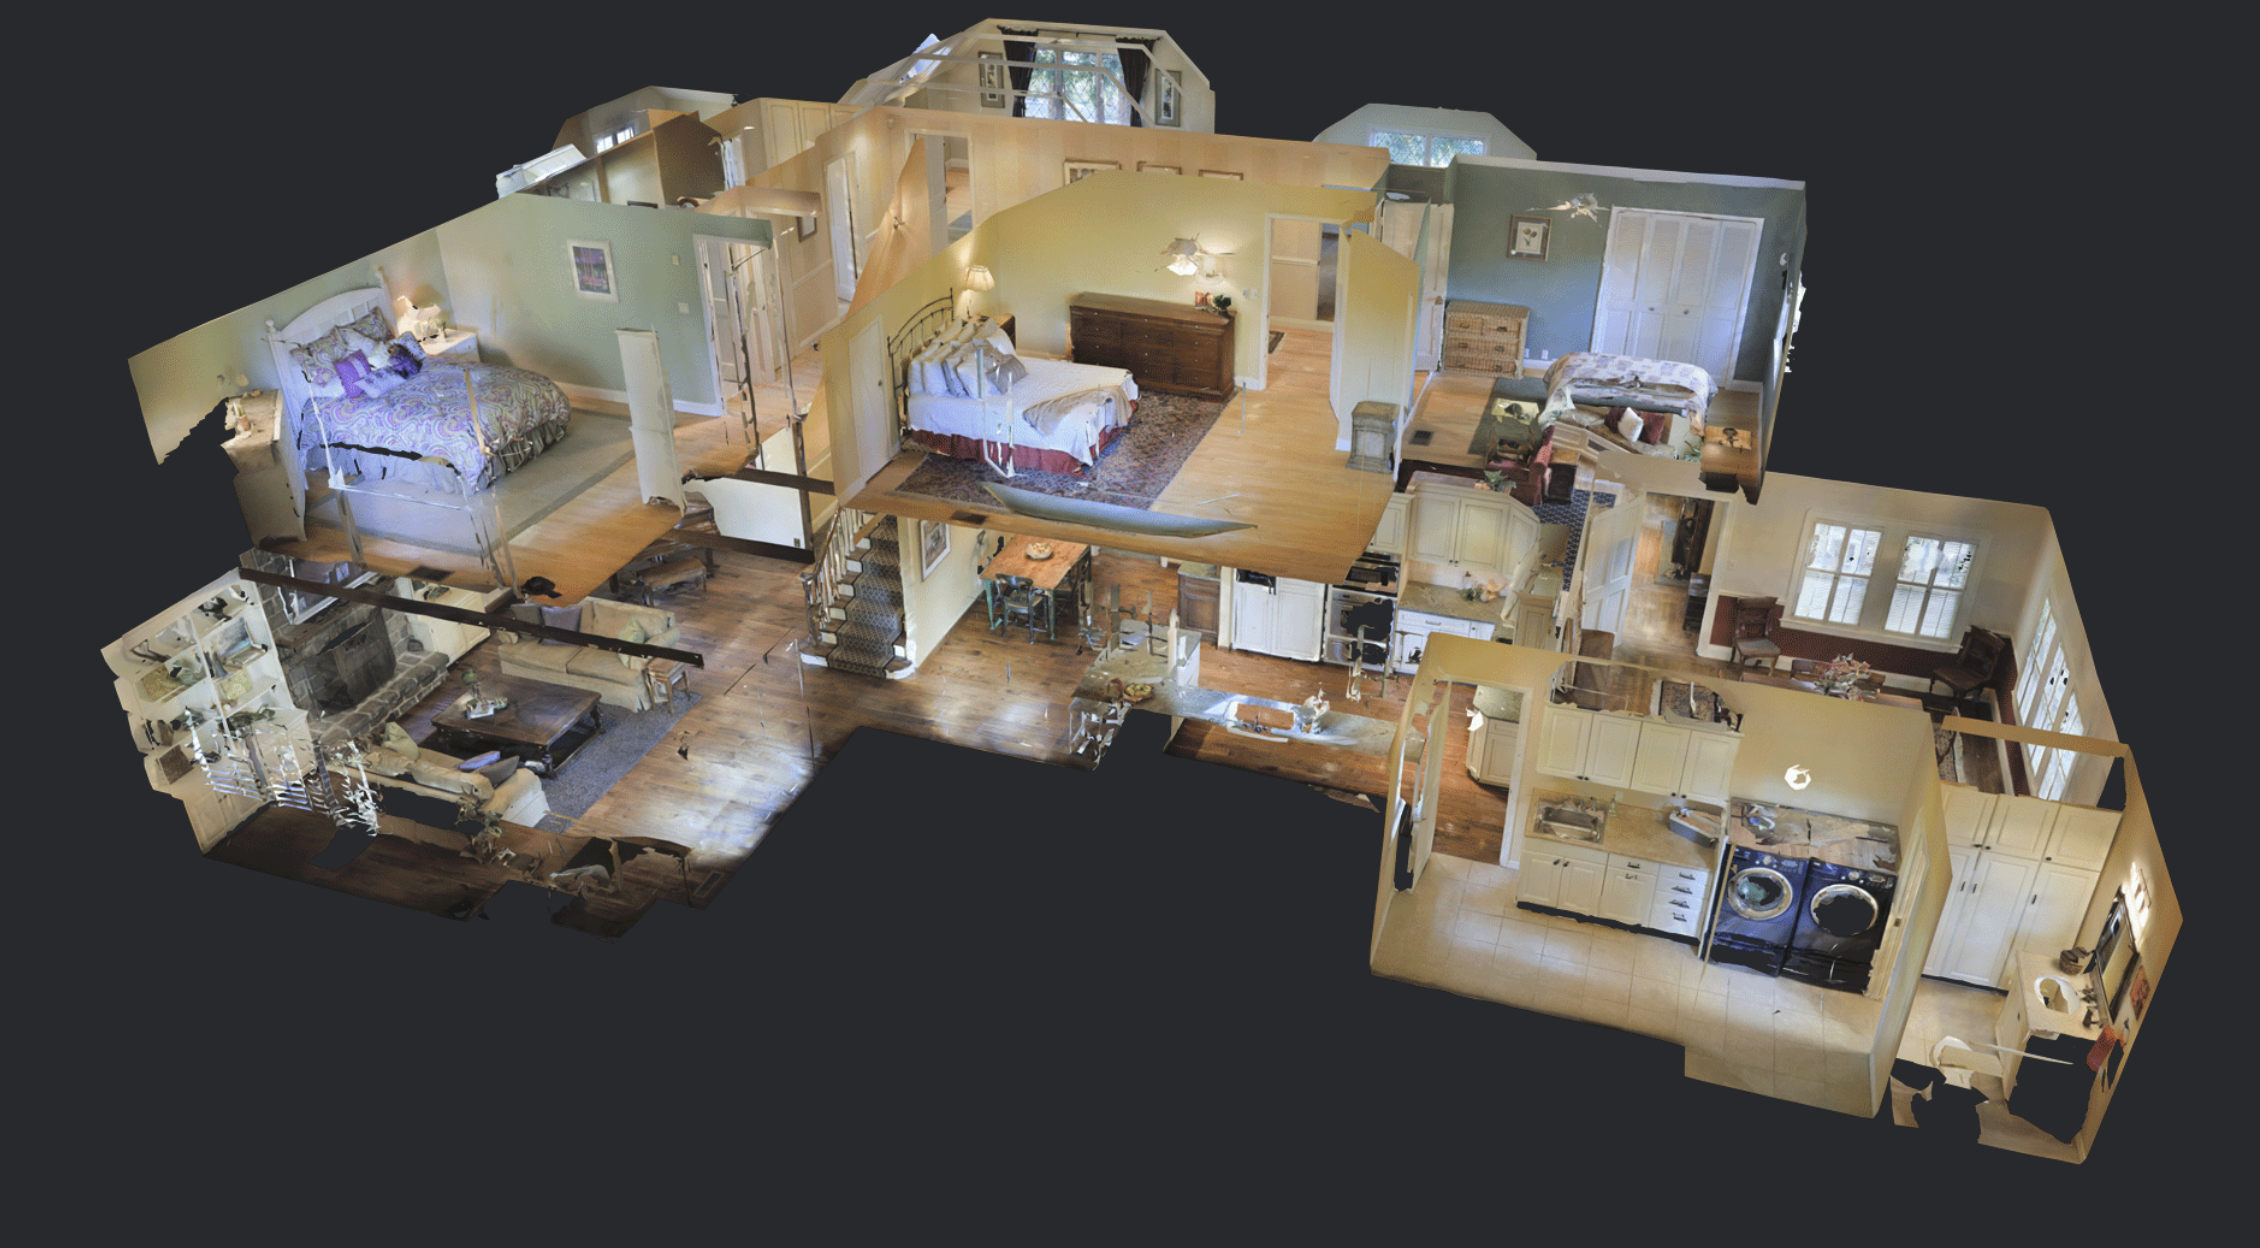 The dollhouse view found in the Matterport 3D digital twin and virtual tour